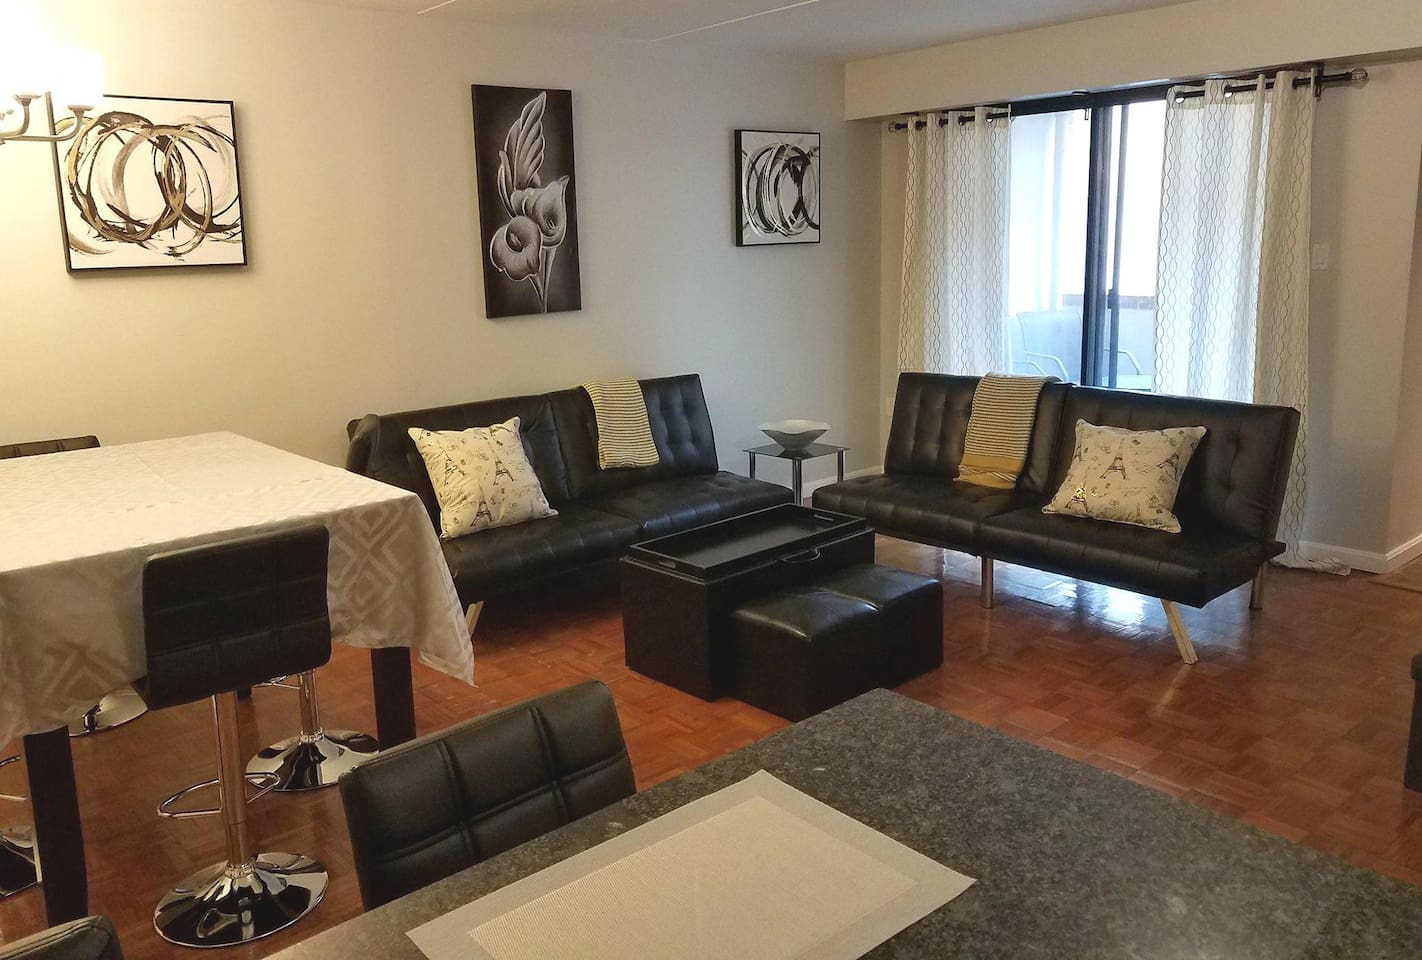 Spacious open-space LR / DR area with adjoining balcony.